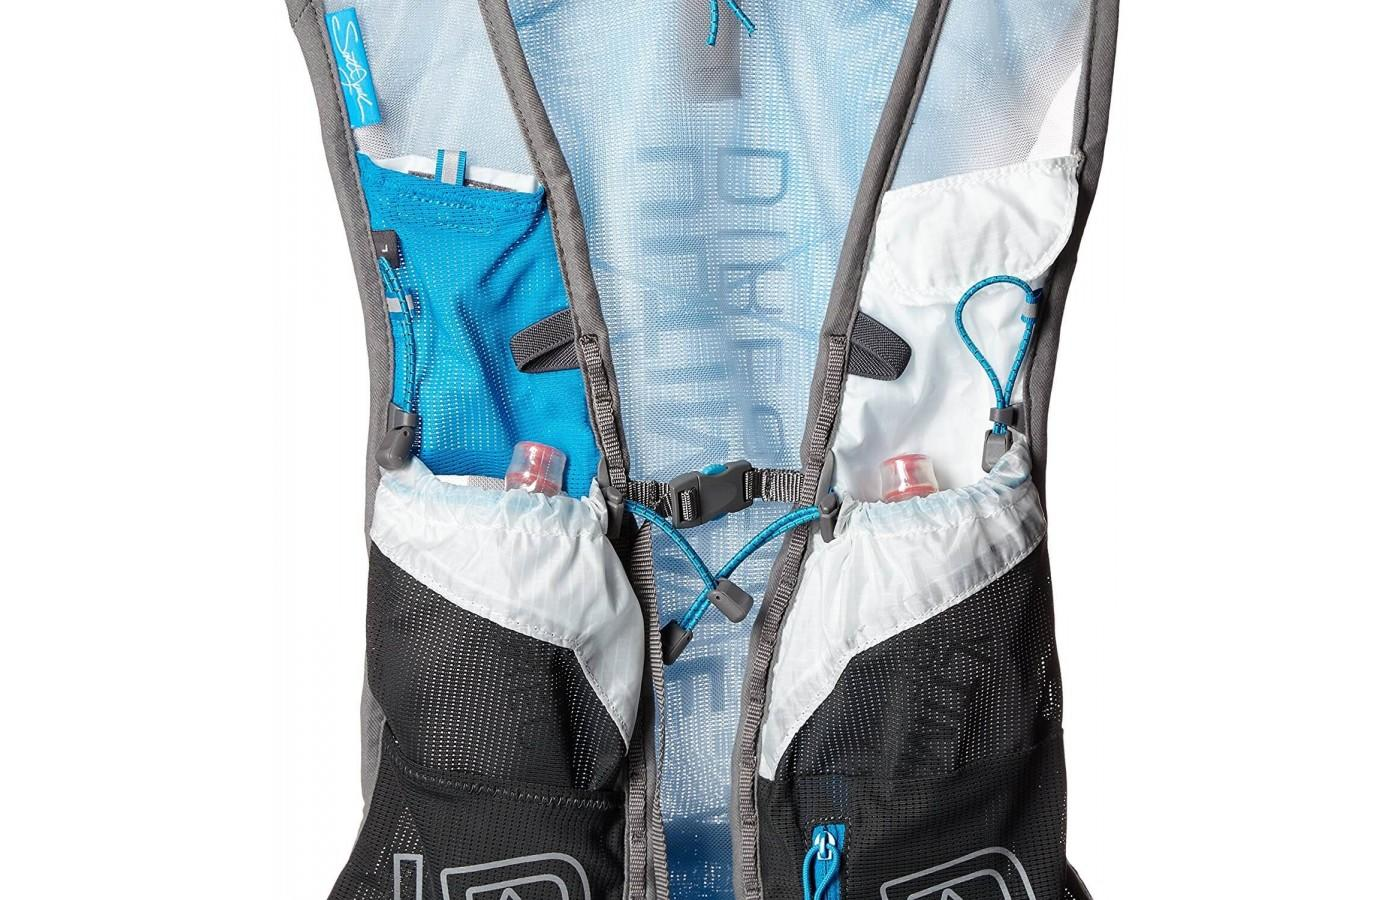 the Ultimate Direction SJ Ultra Vest 3.0 features sternum straps to cinch the vest to a close fit